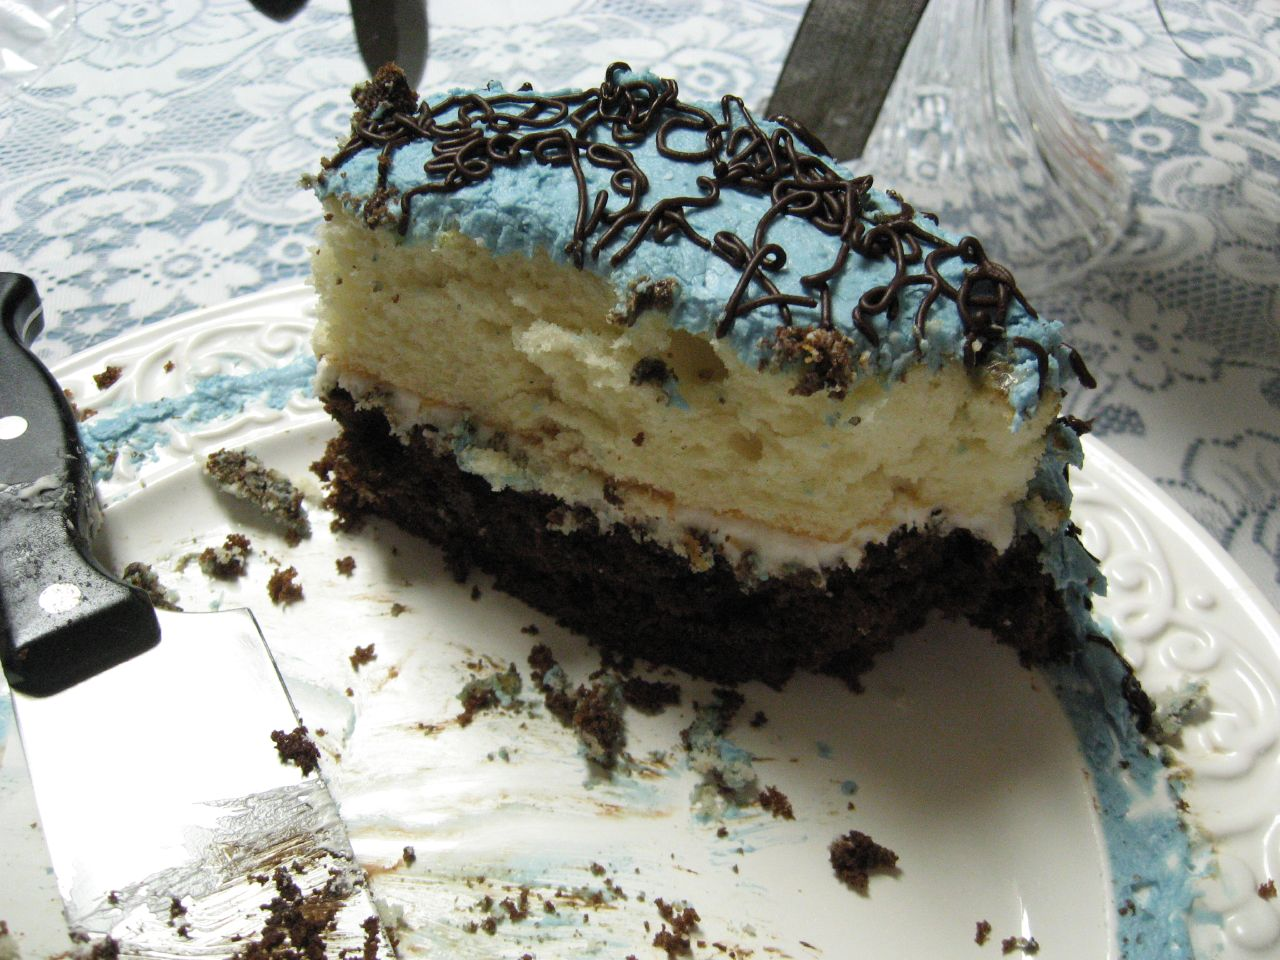 Cake vs Coma: To Eat or Not to Eat…